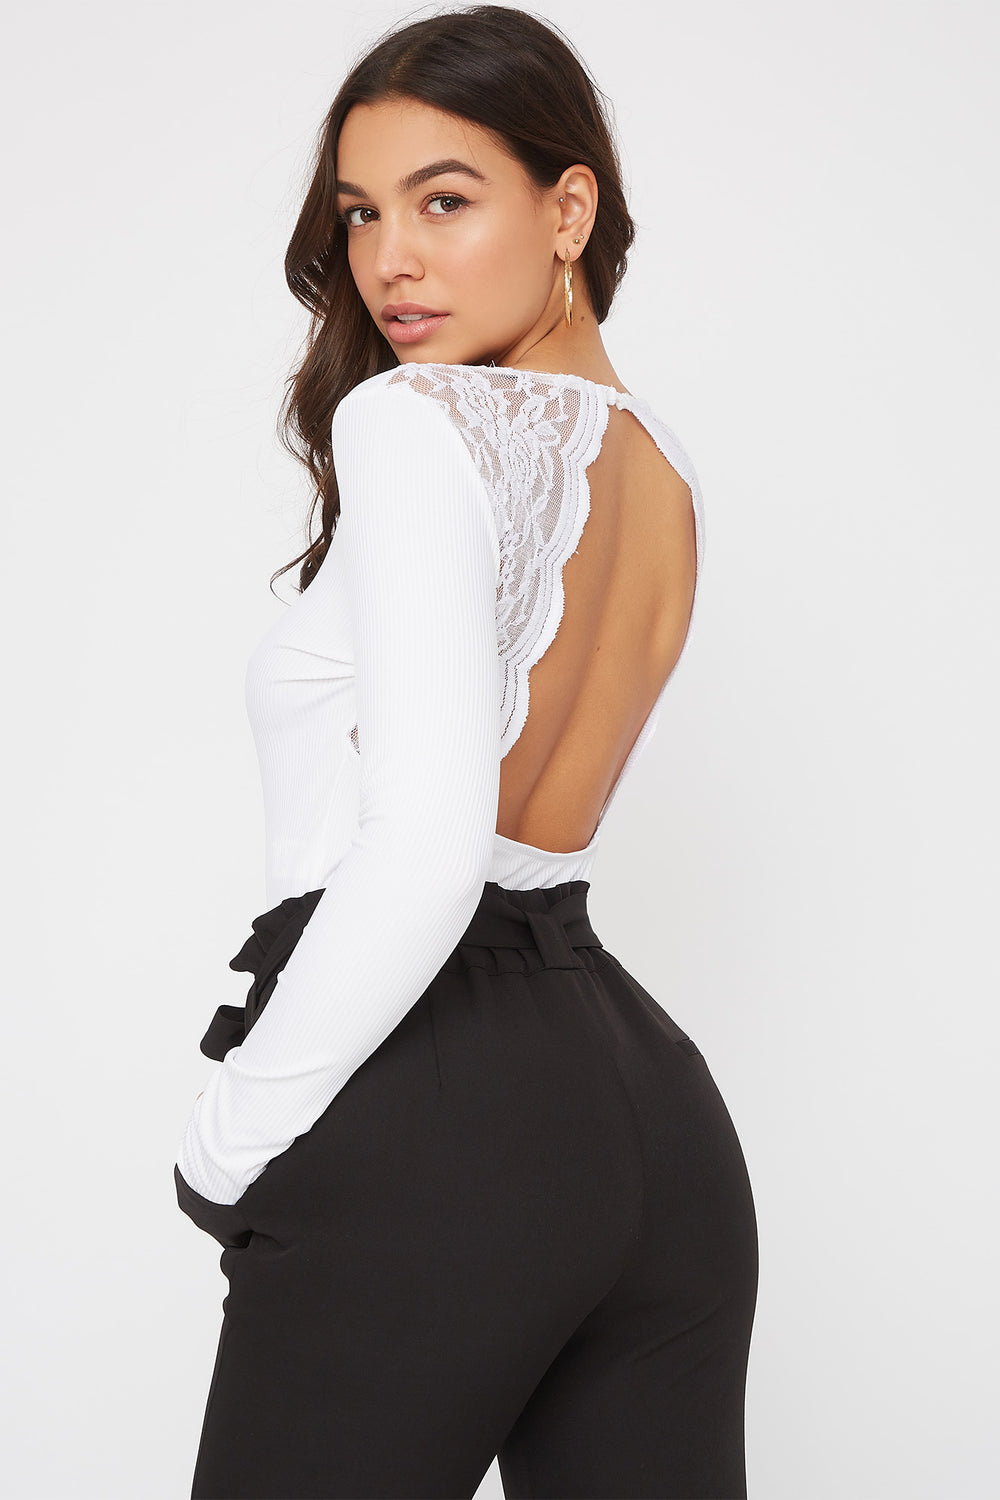 V-Neck Lace Open Back Bodysuit White